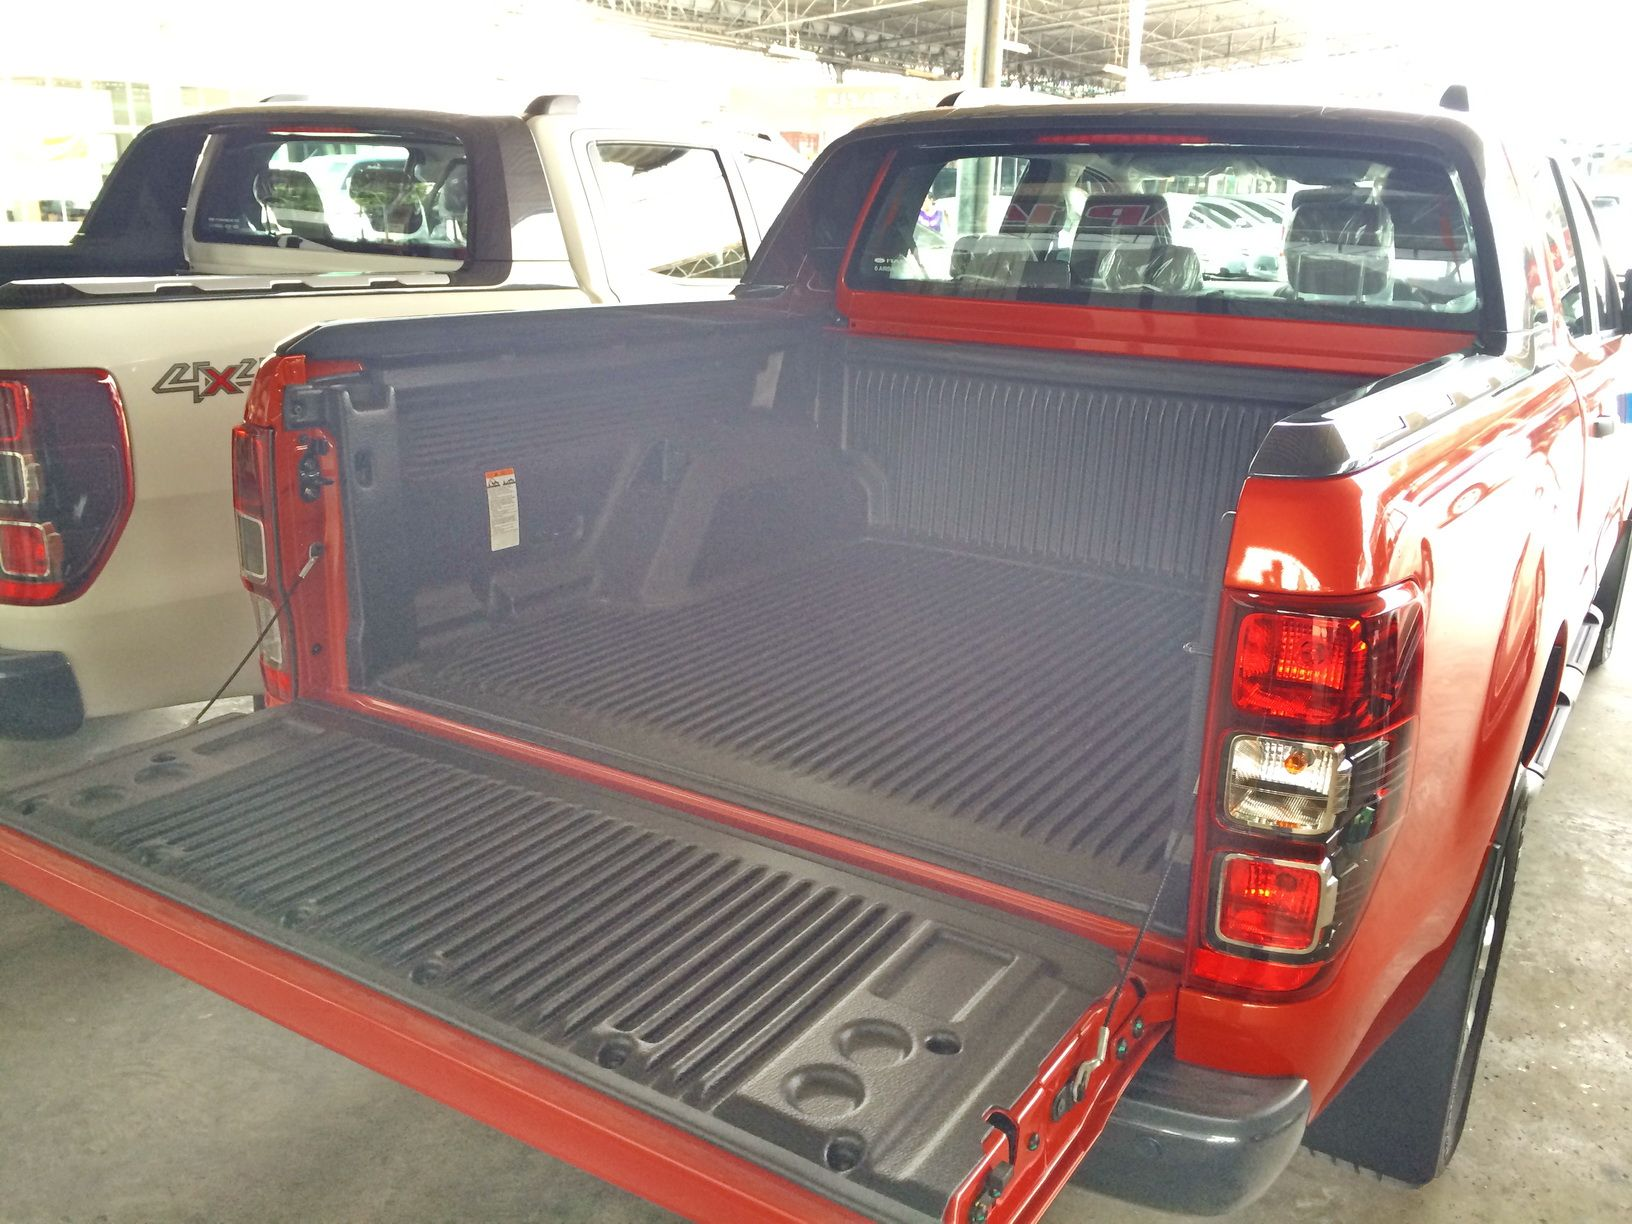 Ford Ranger Wildtrak 2014 Model Thailand Orange rear view